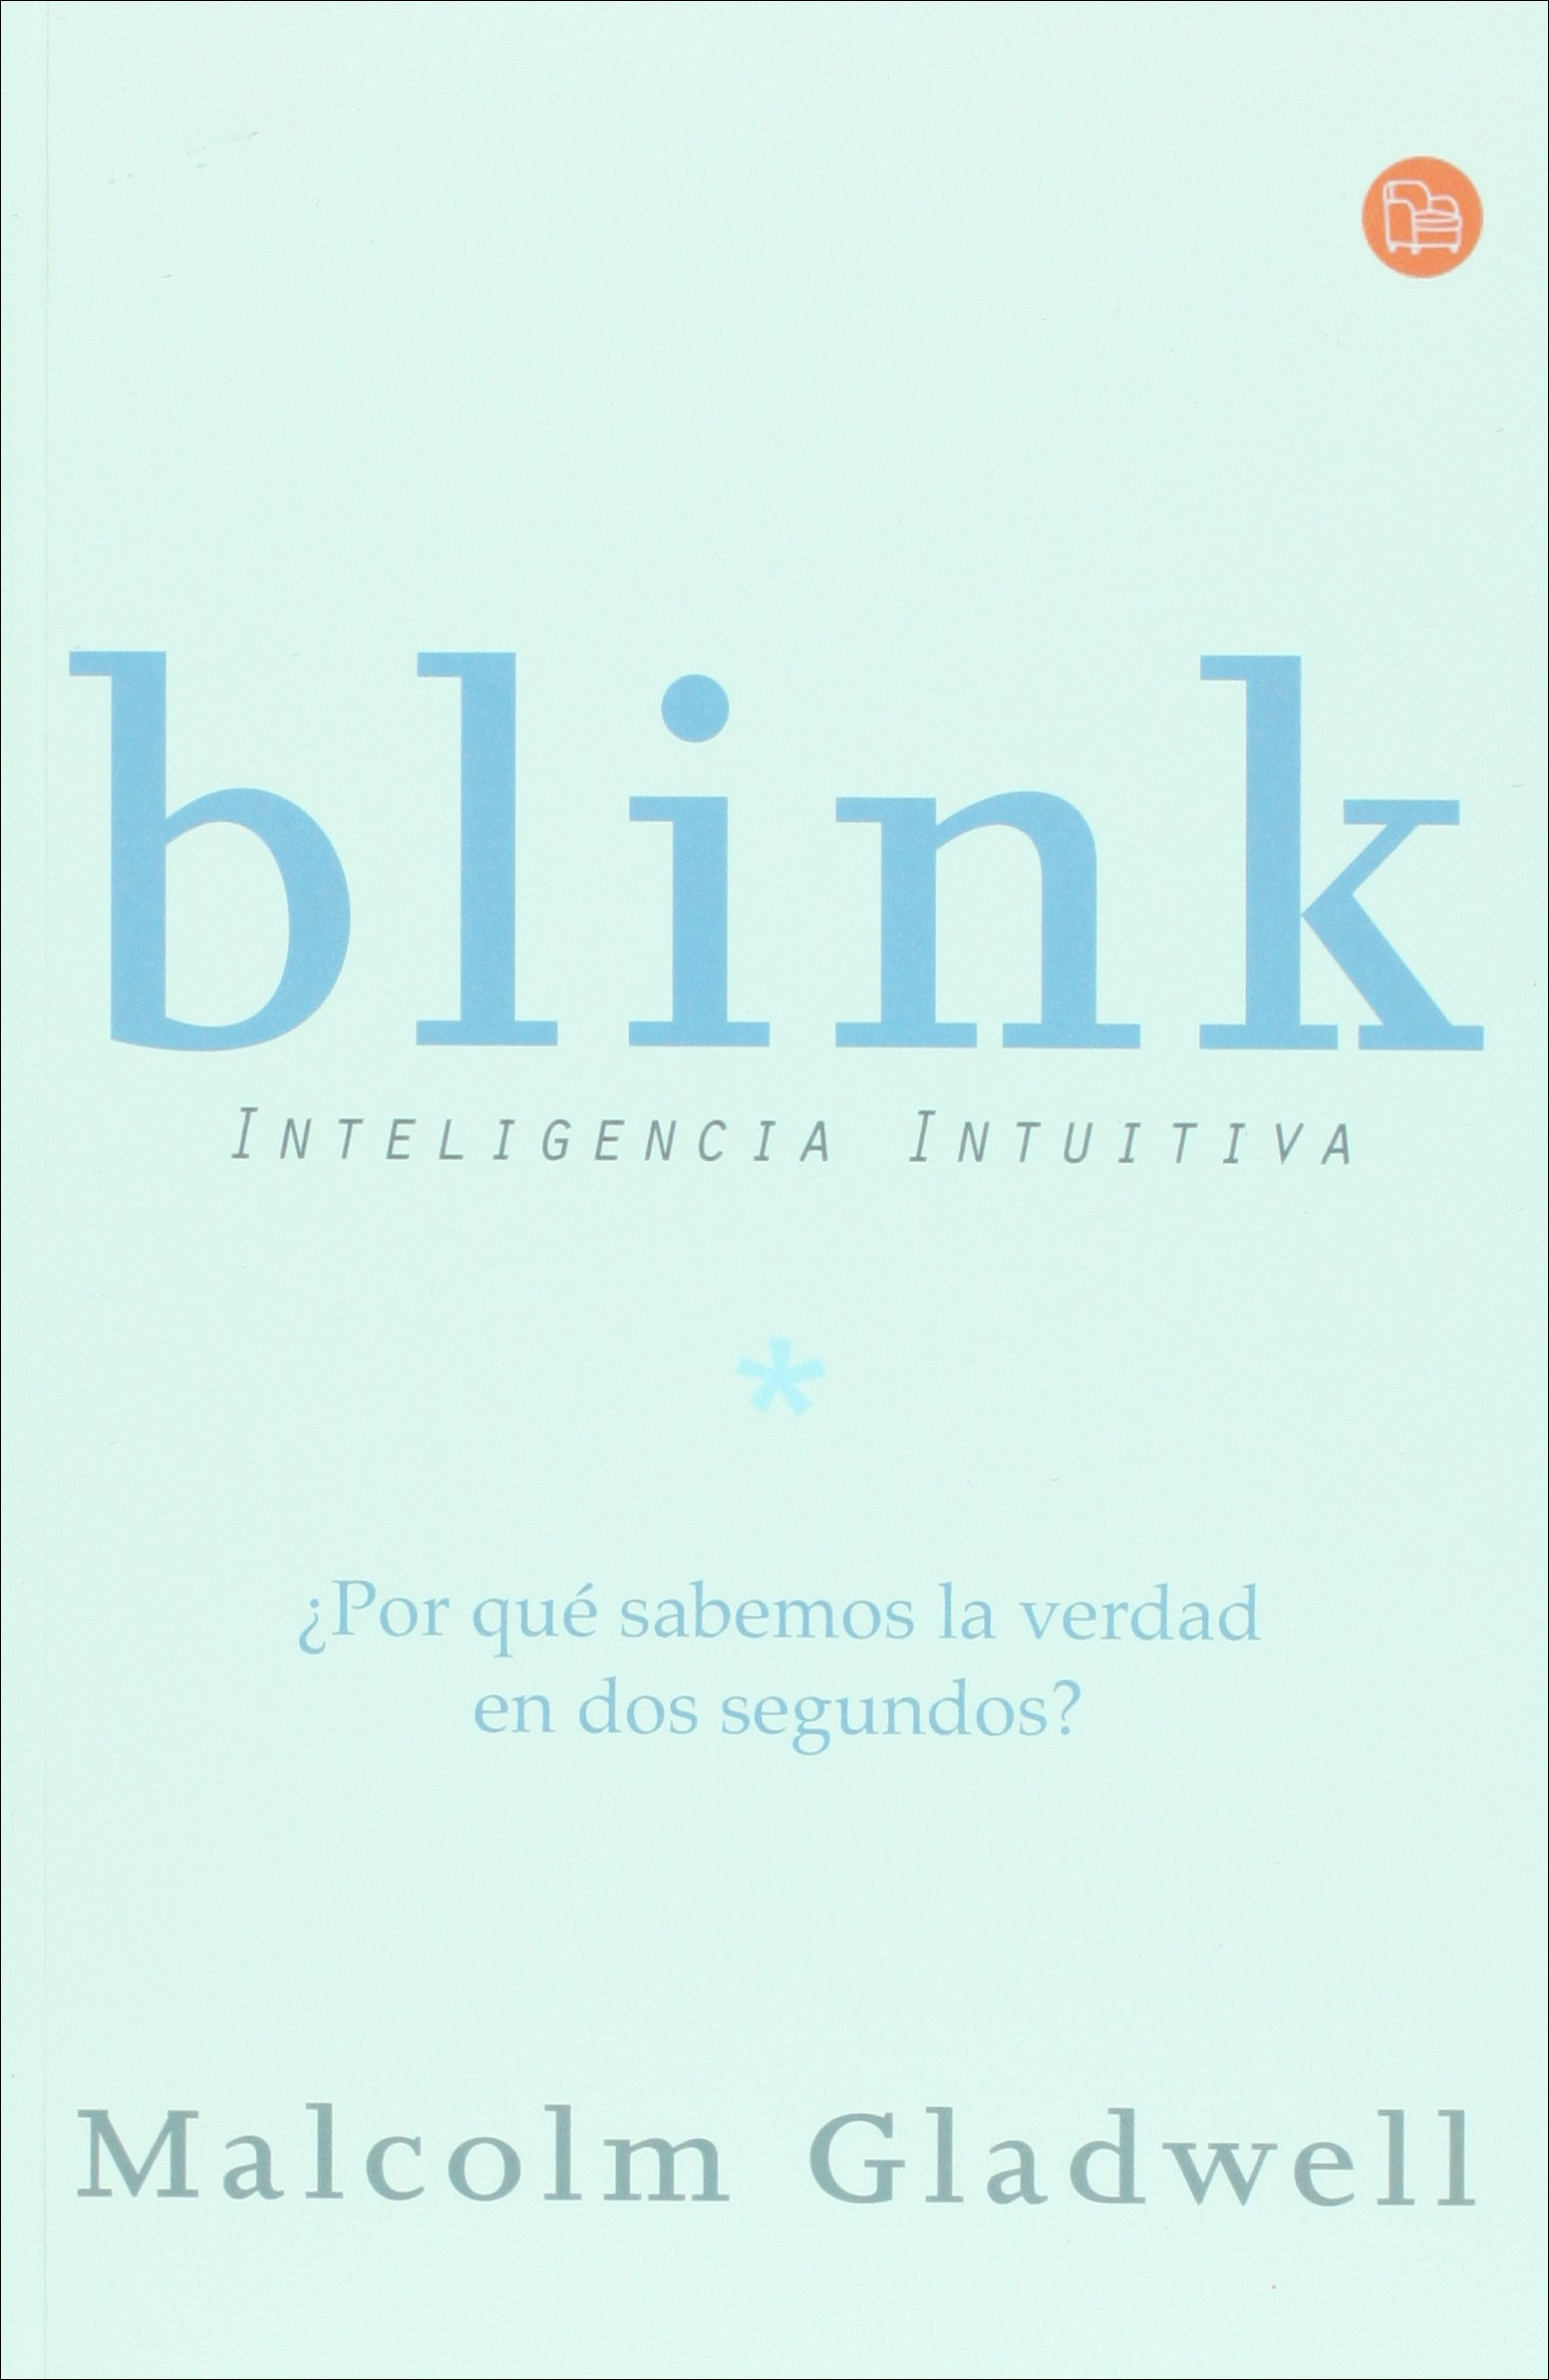 thesis of blink malcolm gladwell